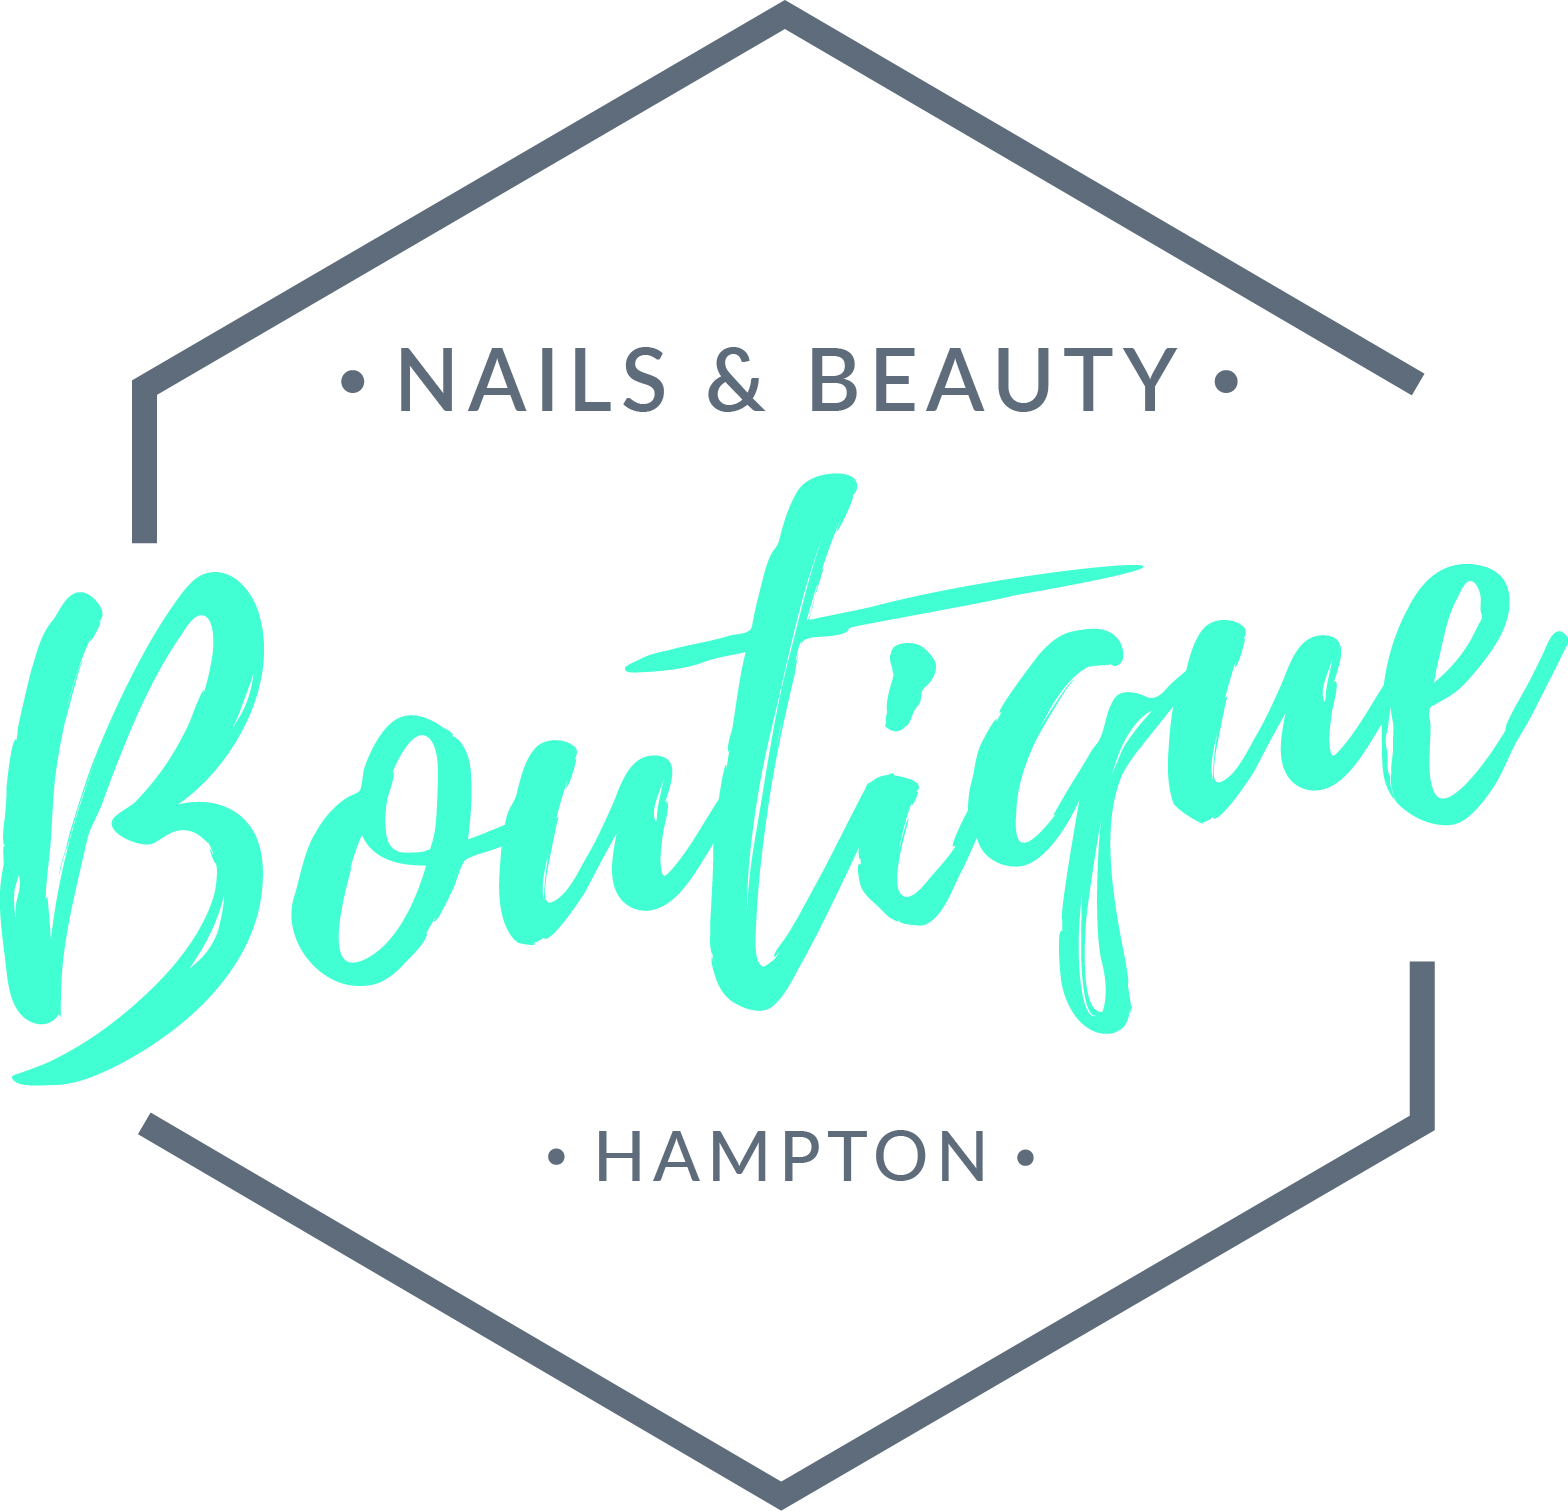 Boutique Nails & Beauty